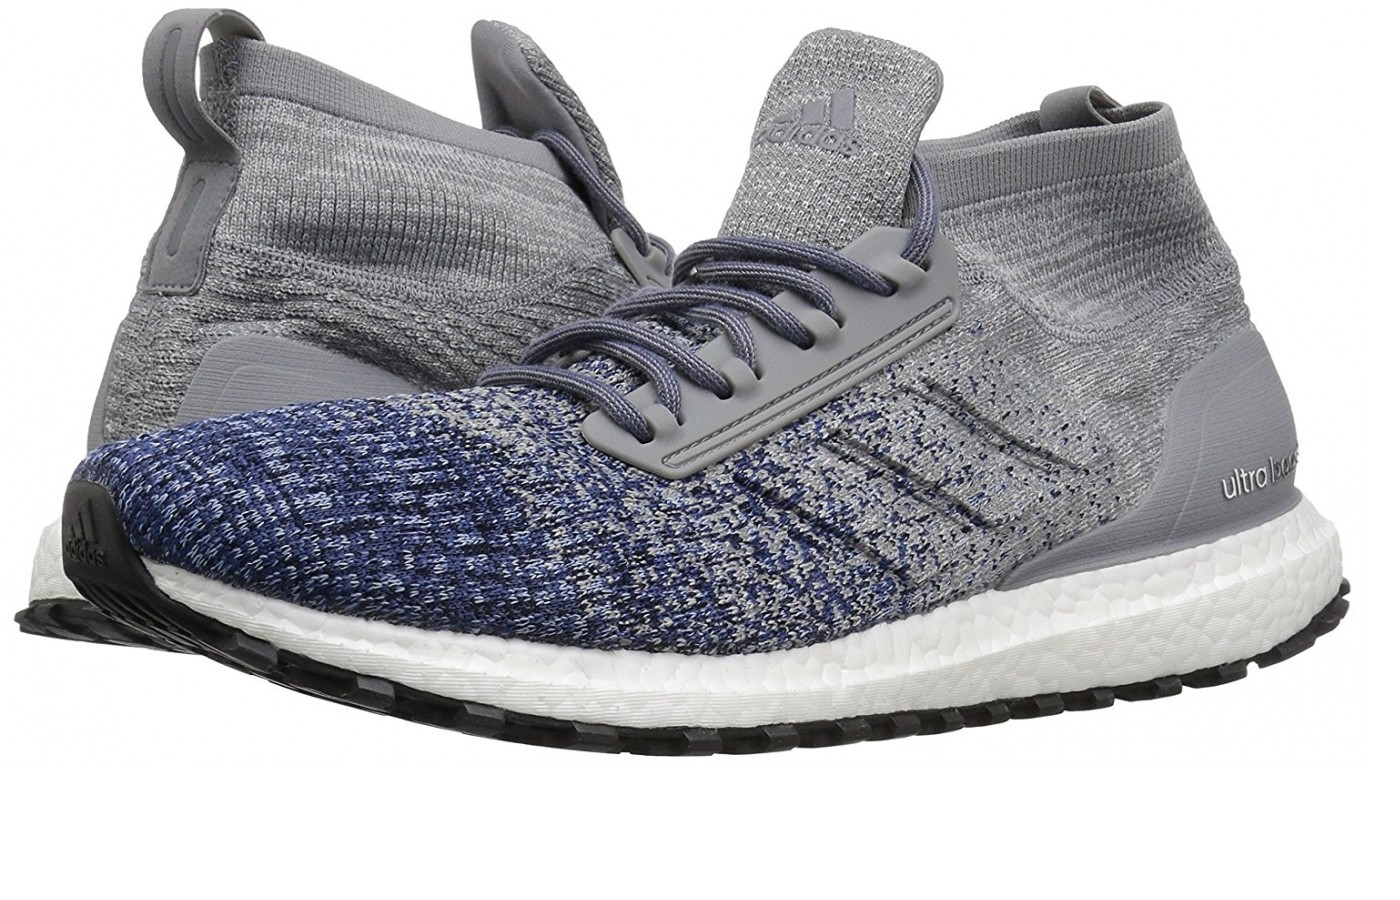 cbb0024717f Adidas Ultraboost All Terrain  To Buy or Not in 2019